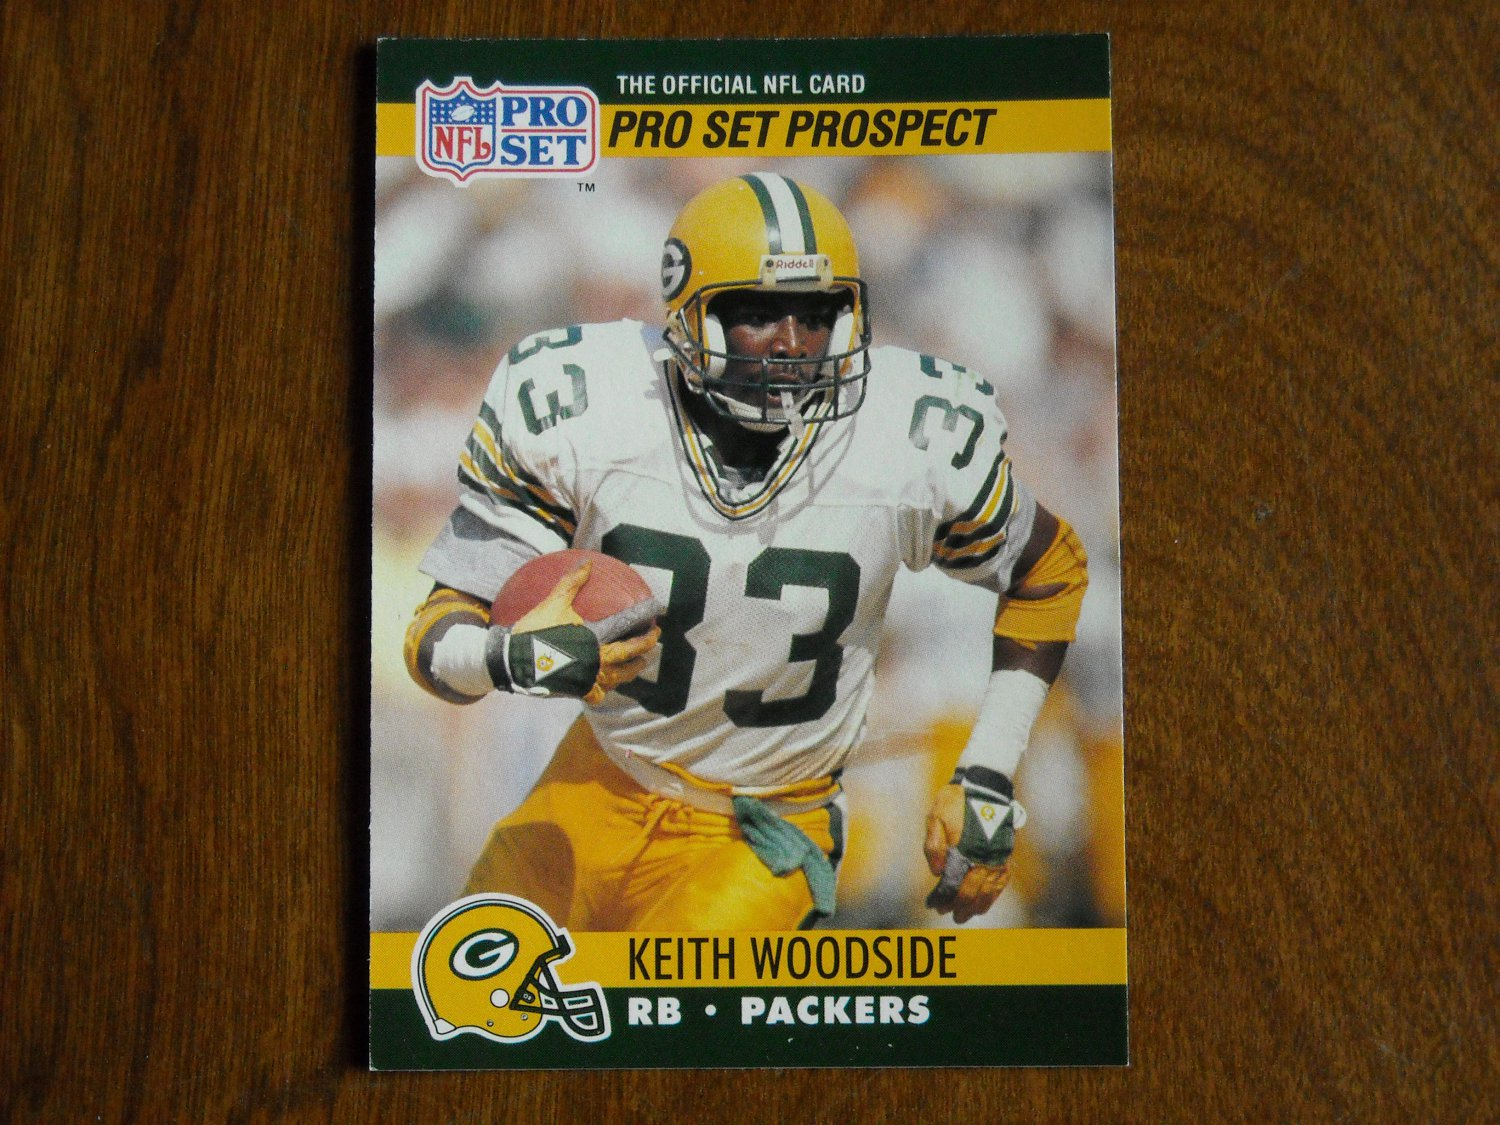 Keith Woodside Green Bay Packers RB Card No. 734 - 1990 NFL Pro Set Football Card